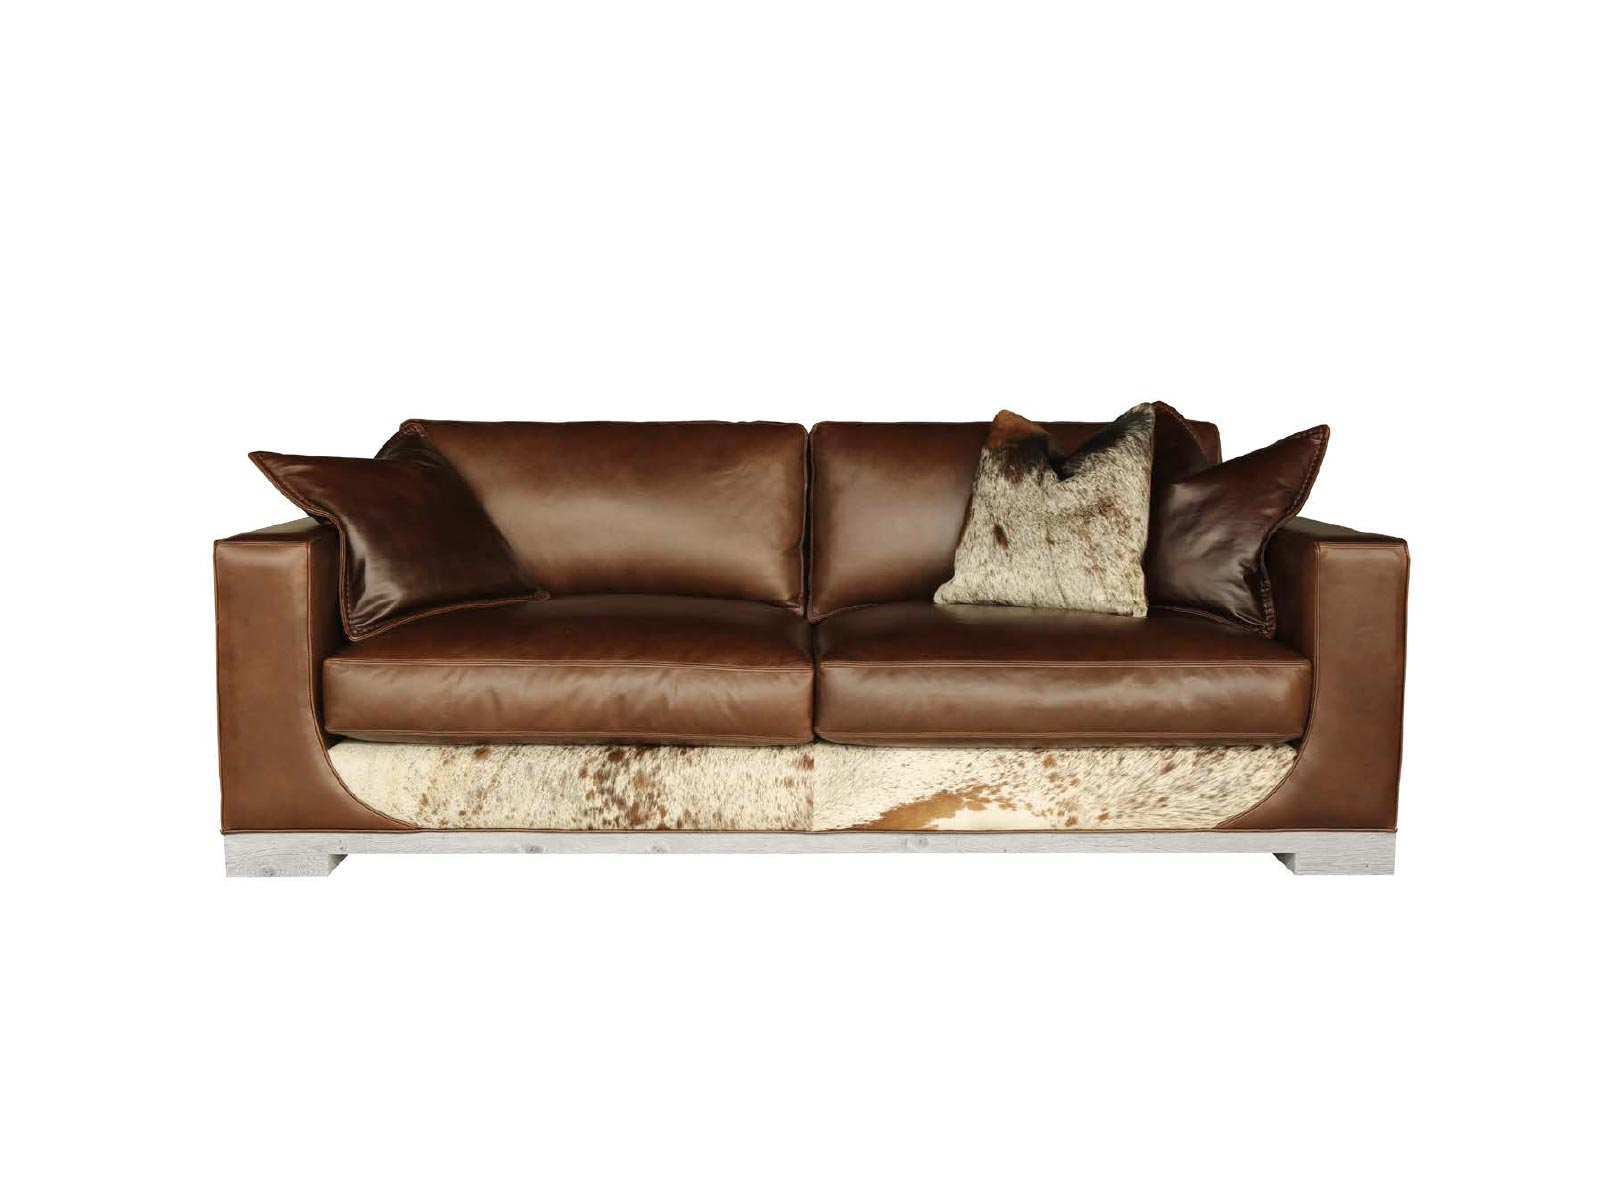 TERLCO lodge loveseat